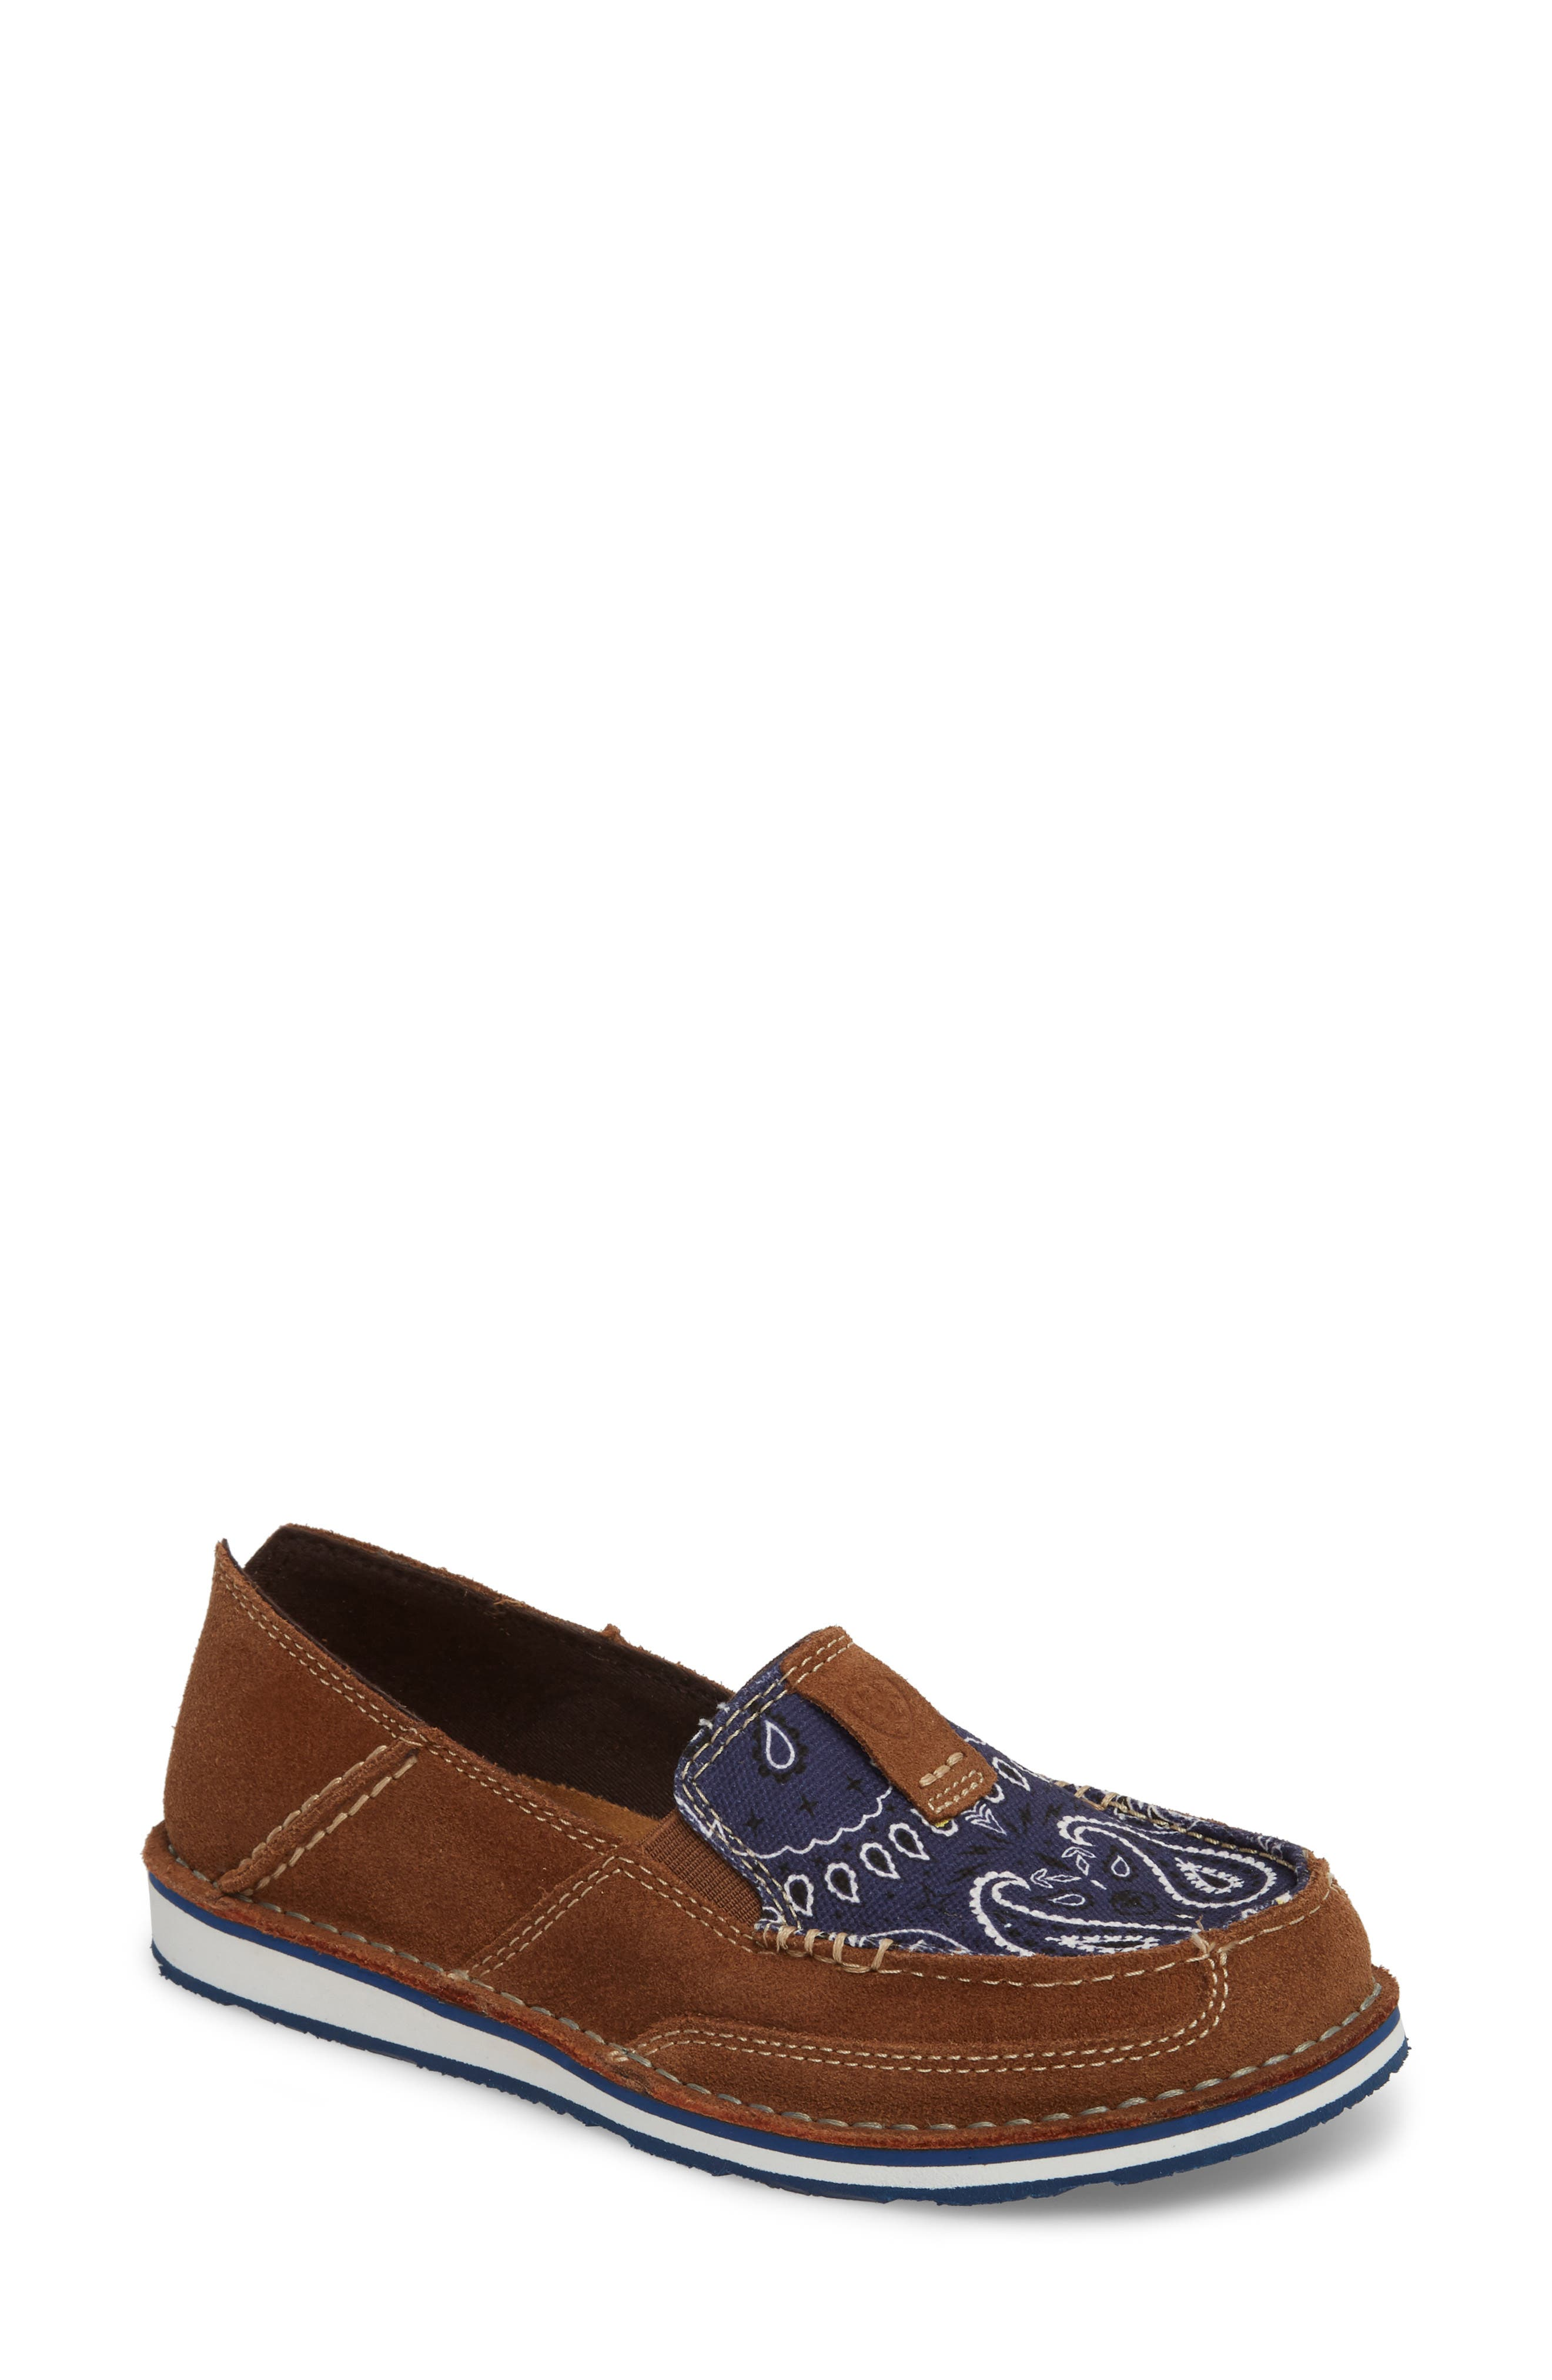 Cruiser Slip-On Loafer,                             Main thumbnail 1, color,                             Toffee Leather